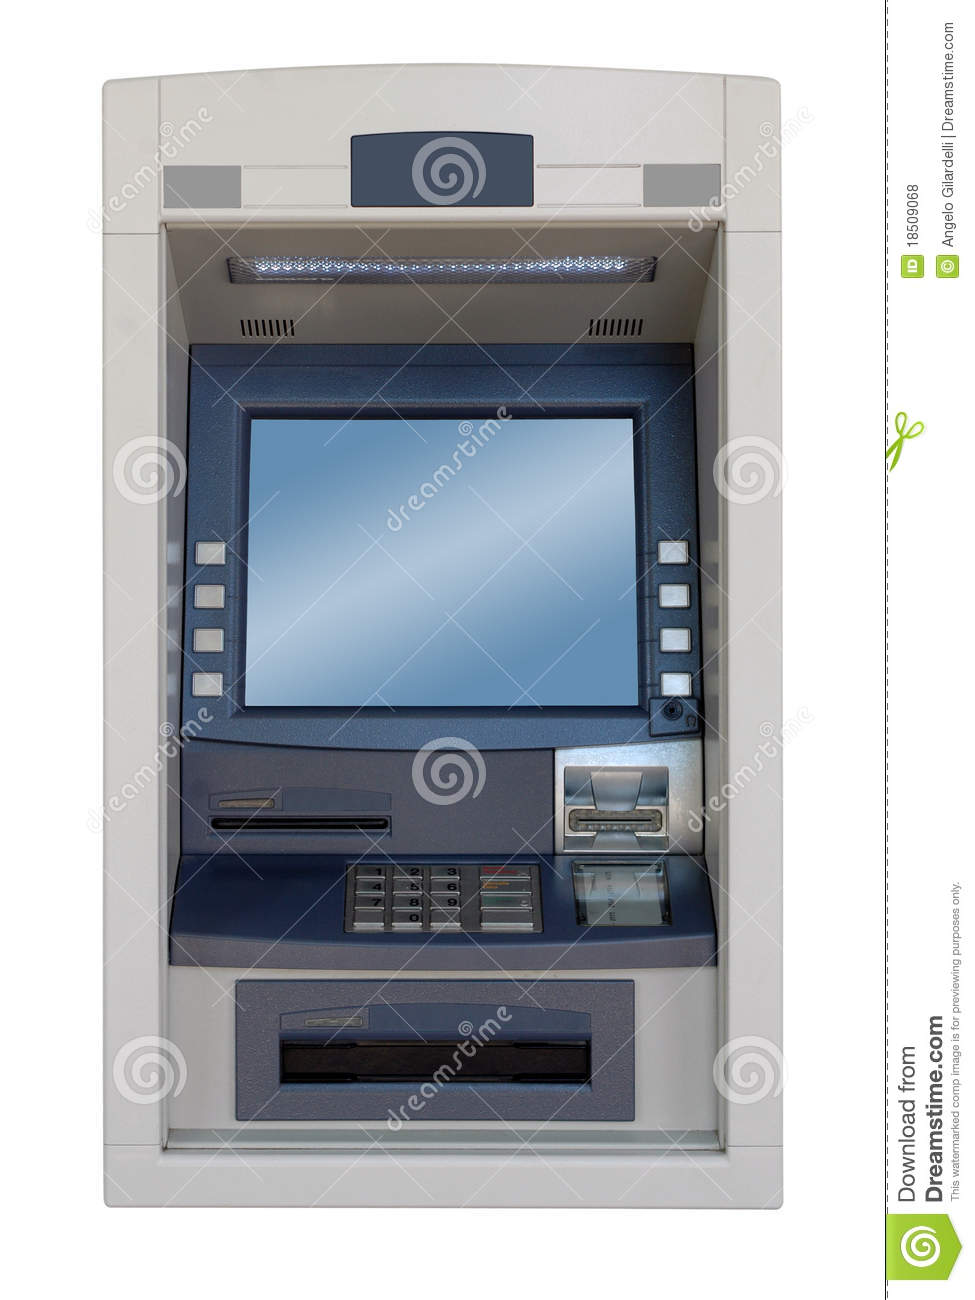 atm machine front view royalty free stock photos image